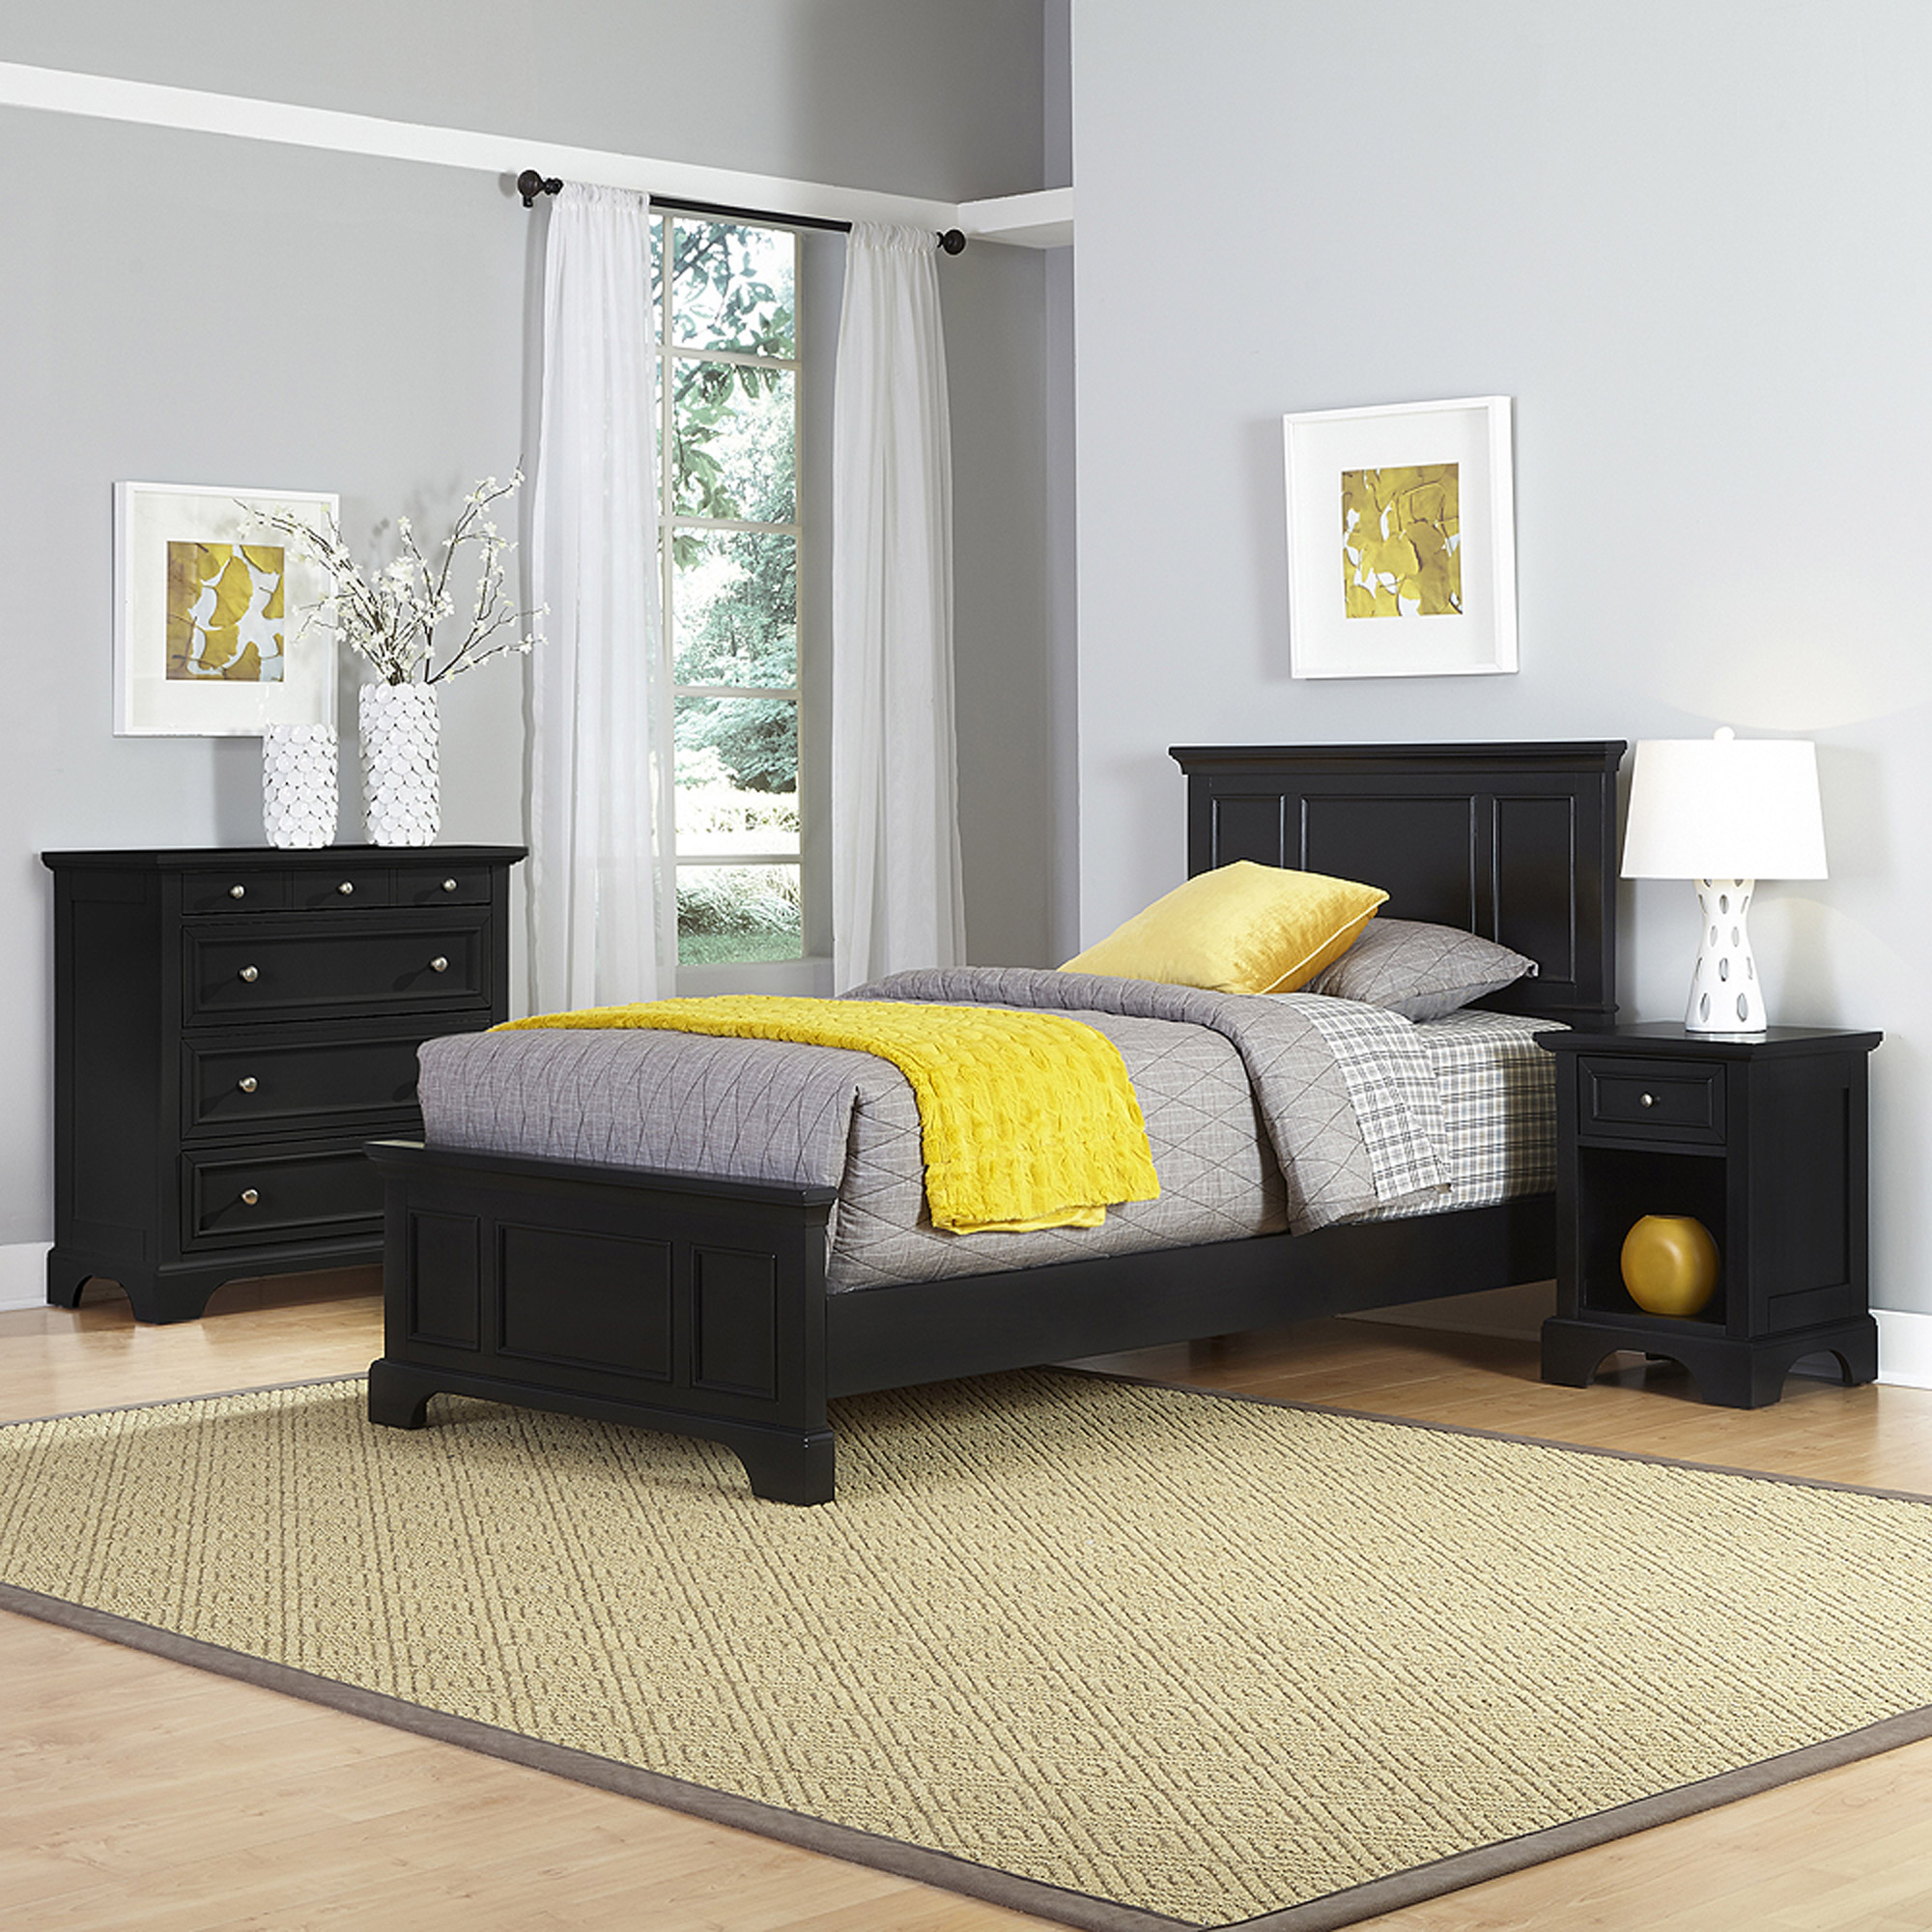 Home Styles Bedford Twin Bed, Night Stand and Chest